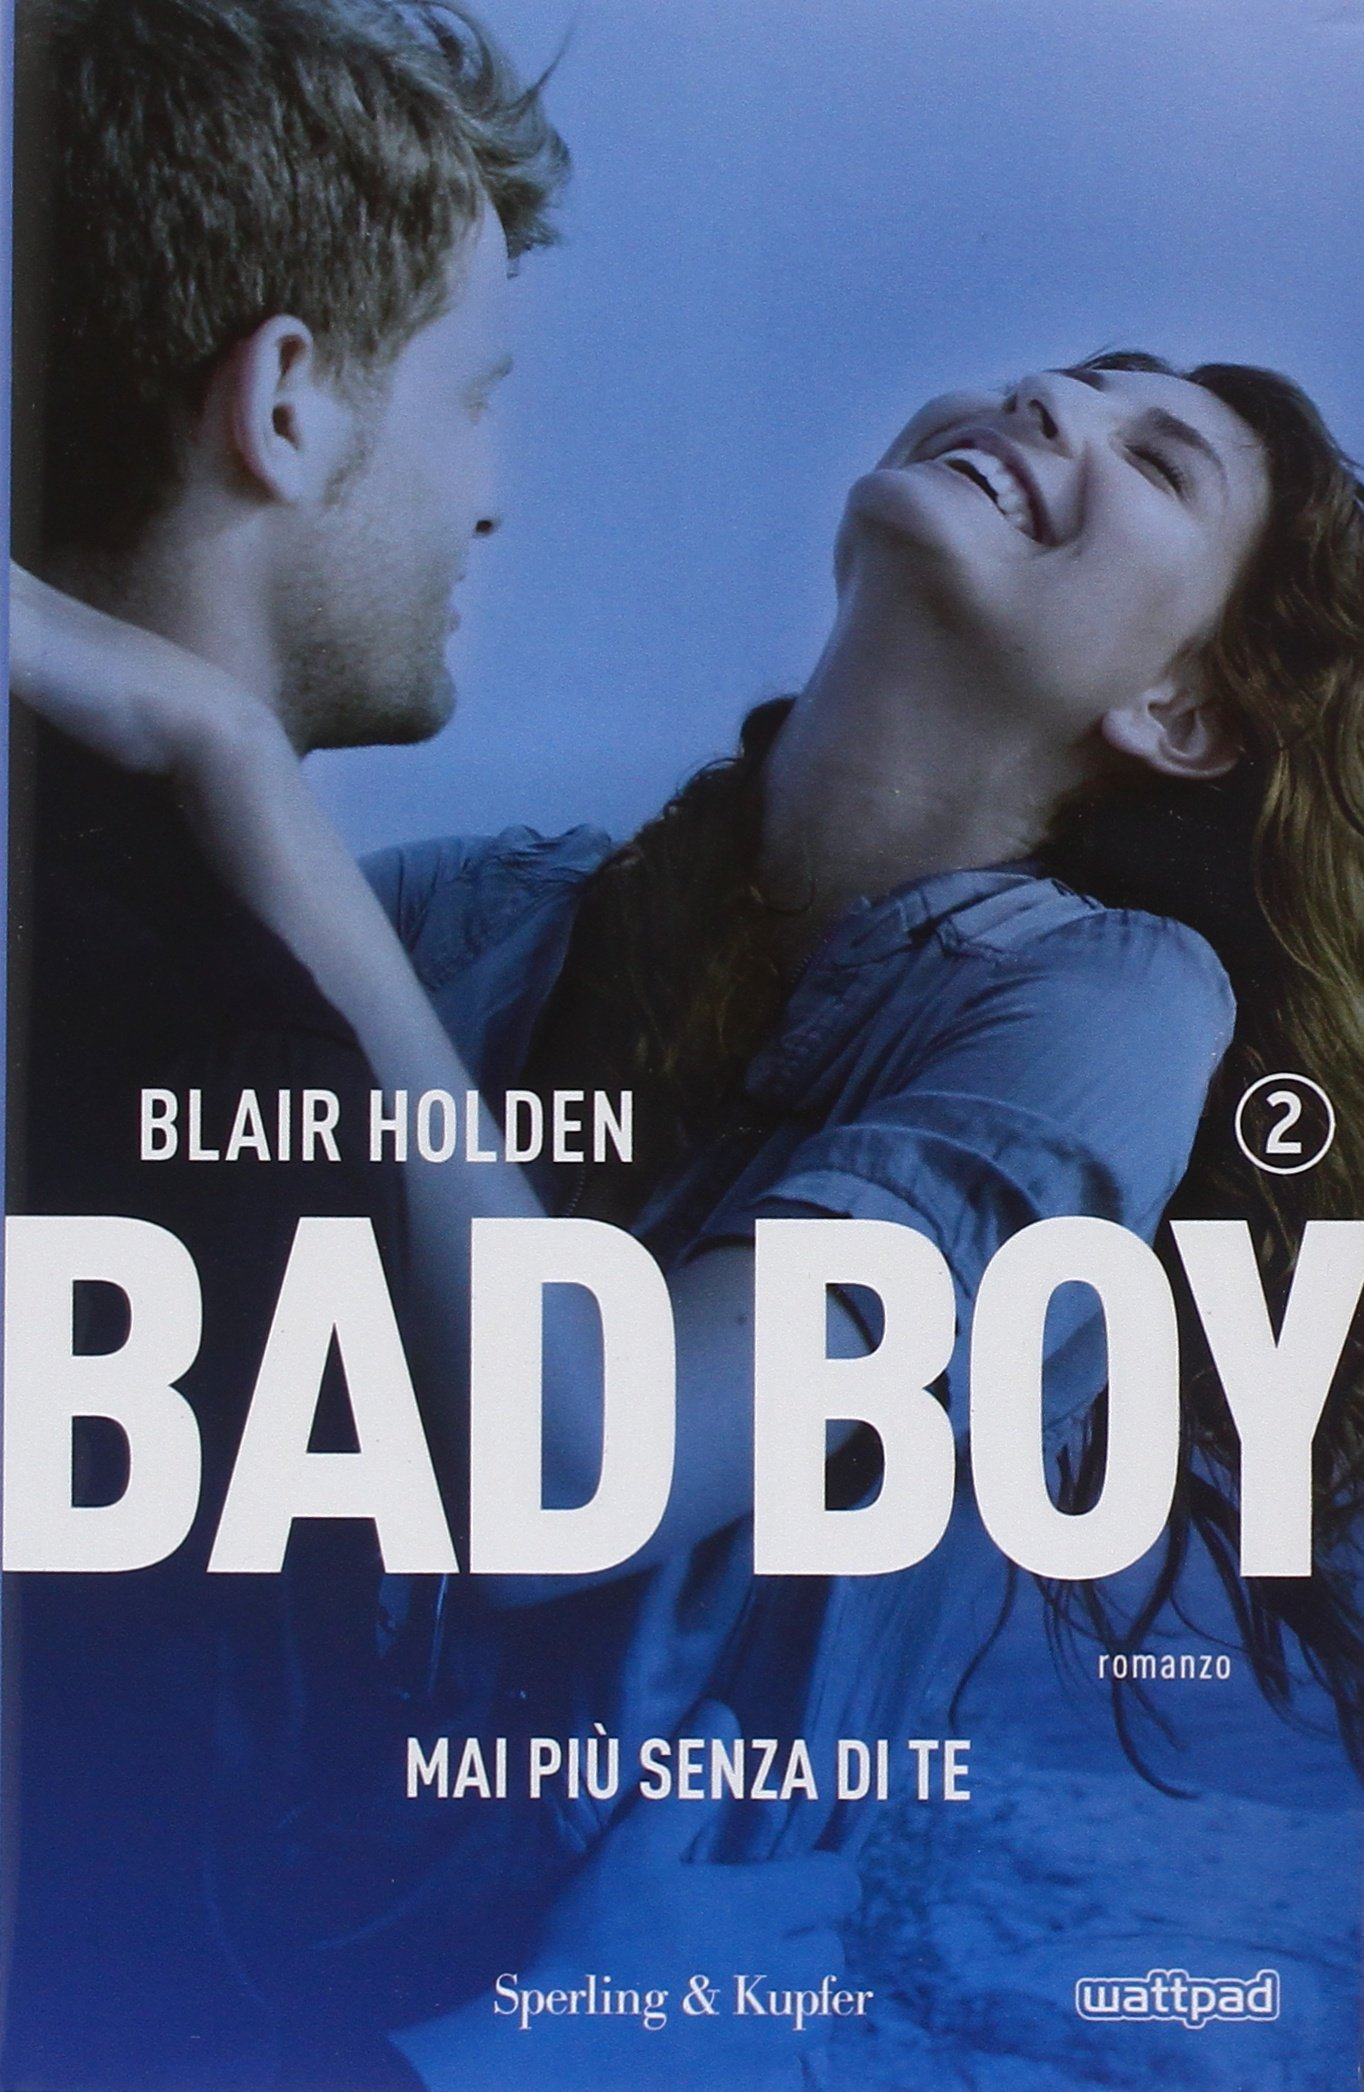 Bad boy: 2 (Pandora): Amazon.es: Blair Holden, S. Reggiani: Libros en idiomas extranjeros